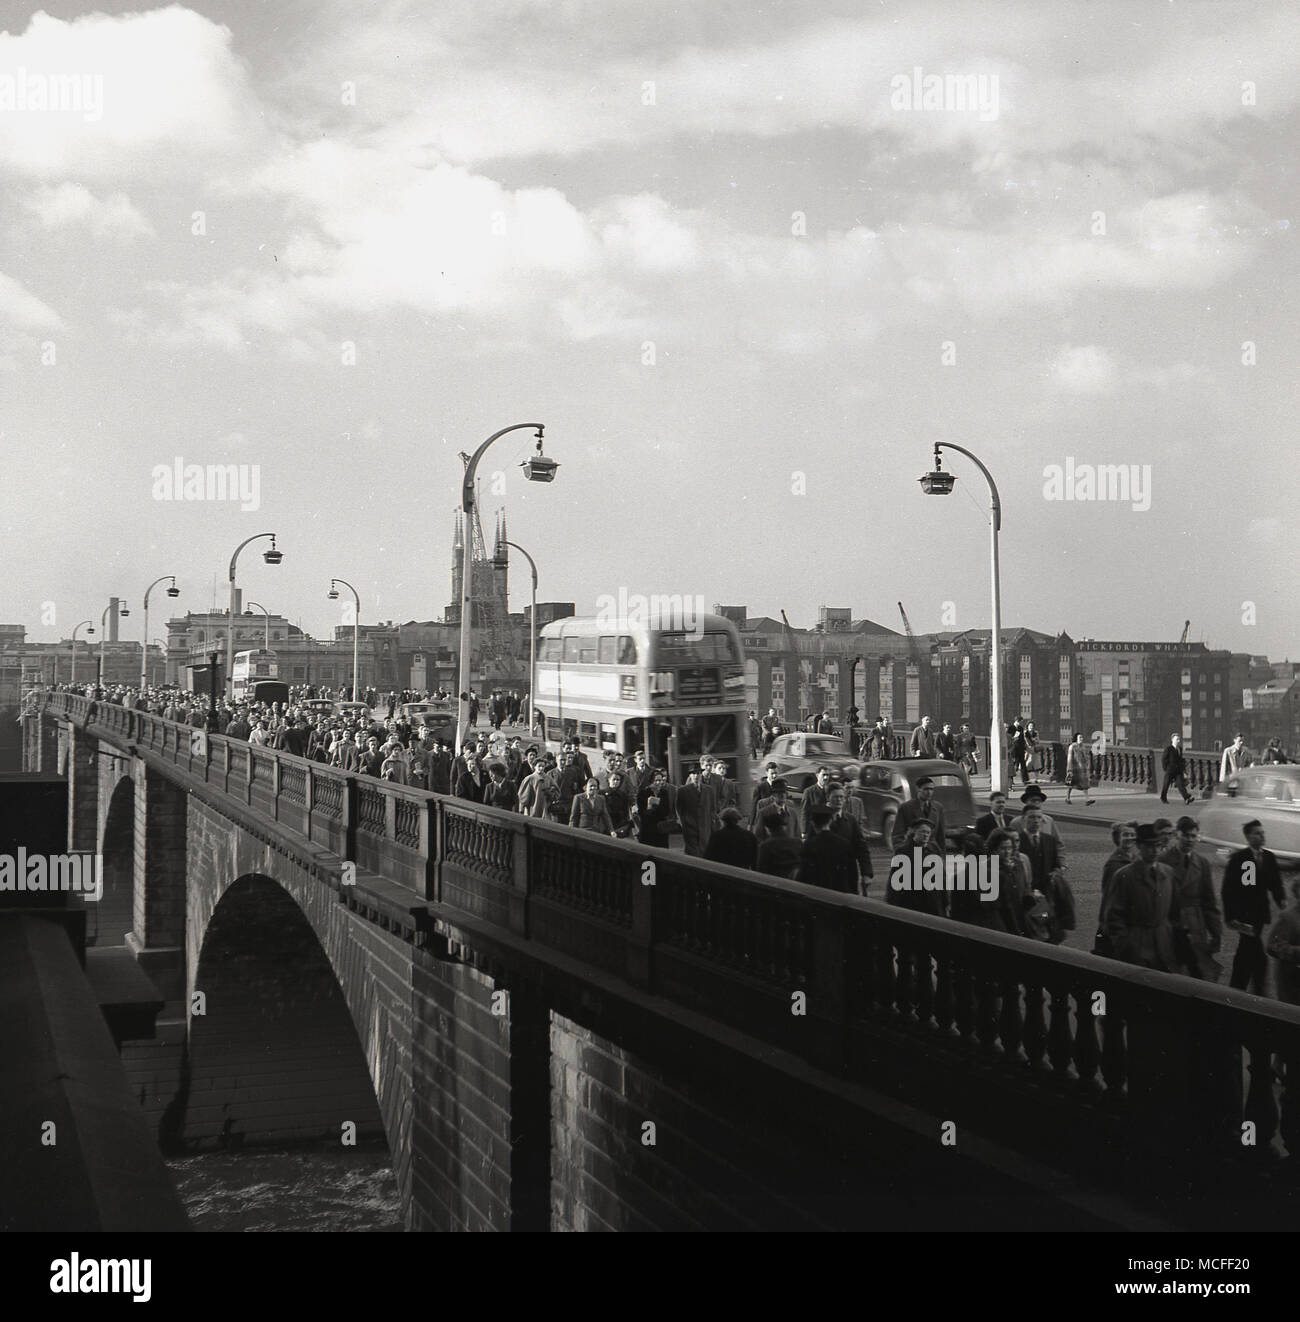 London, 1948, people crossing 'New' London bridge from Southwark on their way to work, London, England. Designed by John Rennie, it opened in 1831 and was composed of five stone arches, replacing the earlier Medieval bridge. The bridge became the busiest point in London and one of its most congested, with thousands of pedestrians and vehicles crossing it every hour. - Stock Image